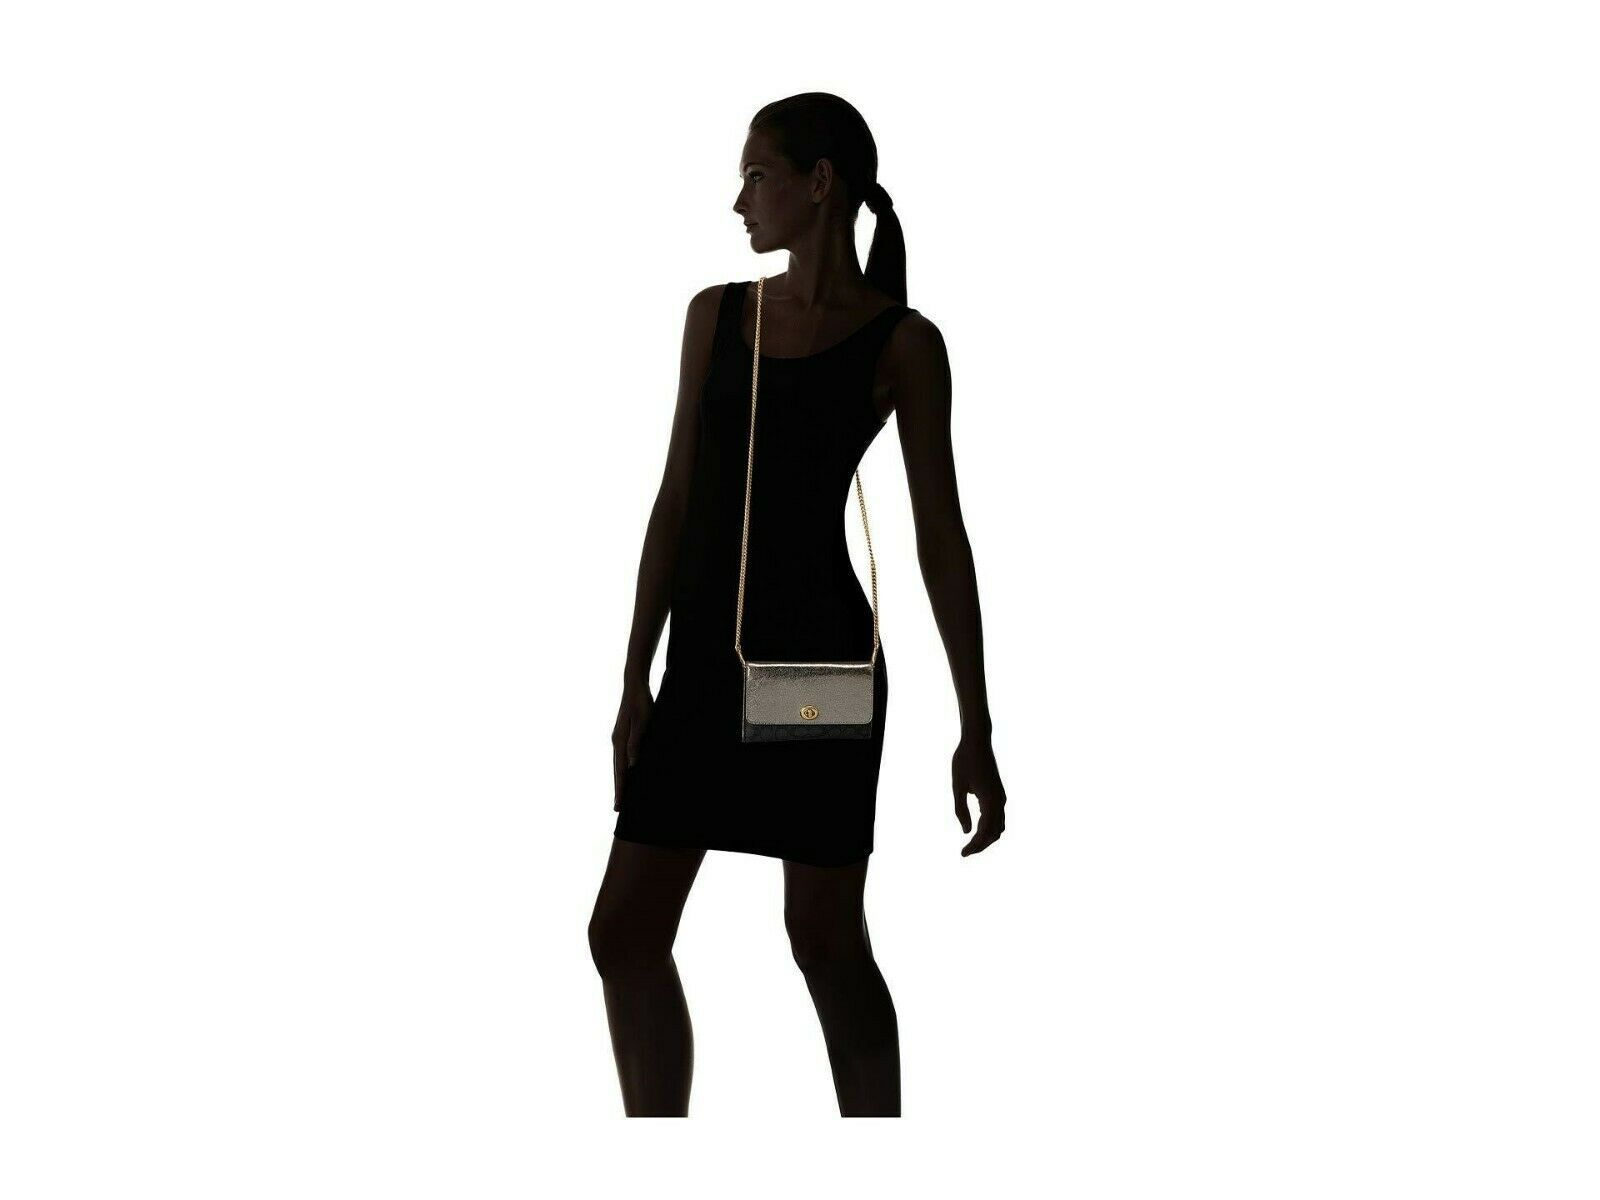 NWT COACH TURNLOCK SIGNATURE LEATHER CROSSBODY BAG CHARCOAL GRAPHITE